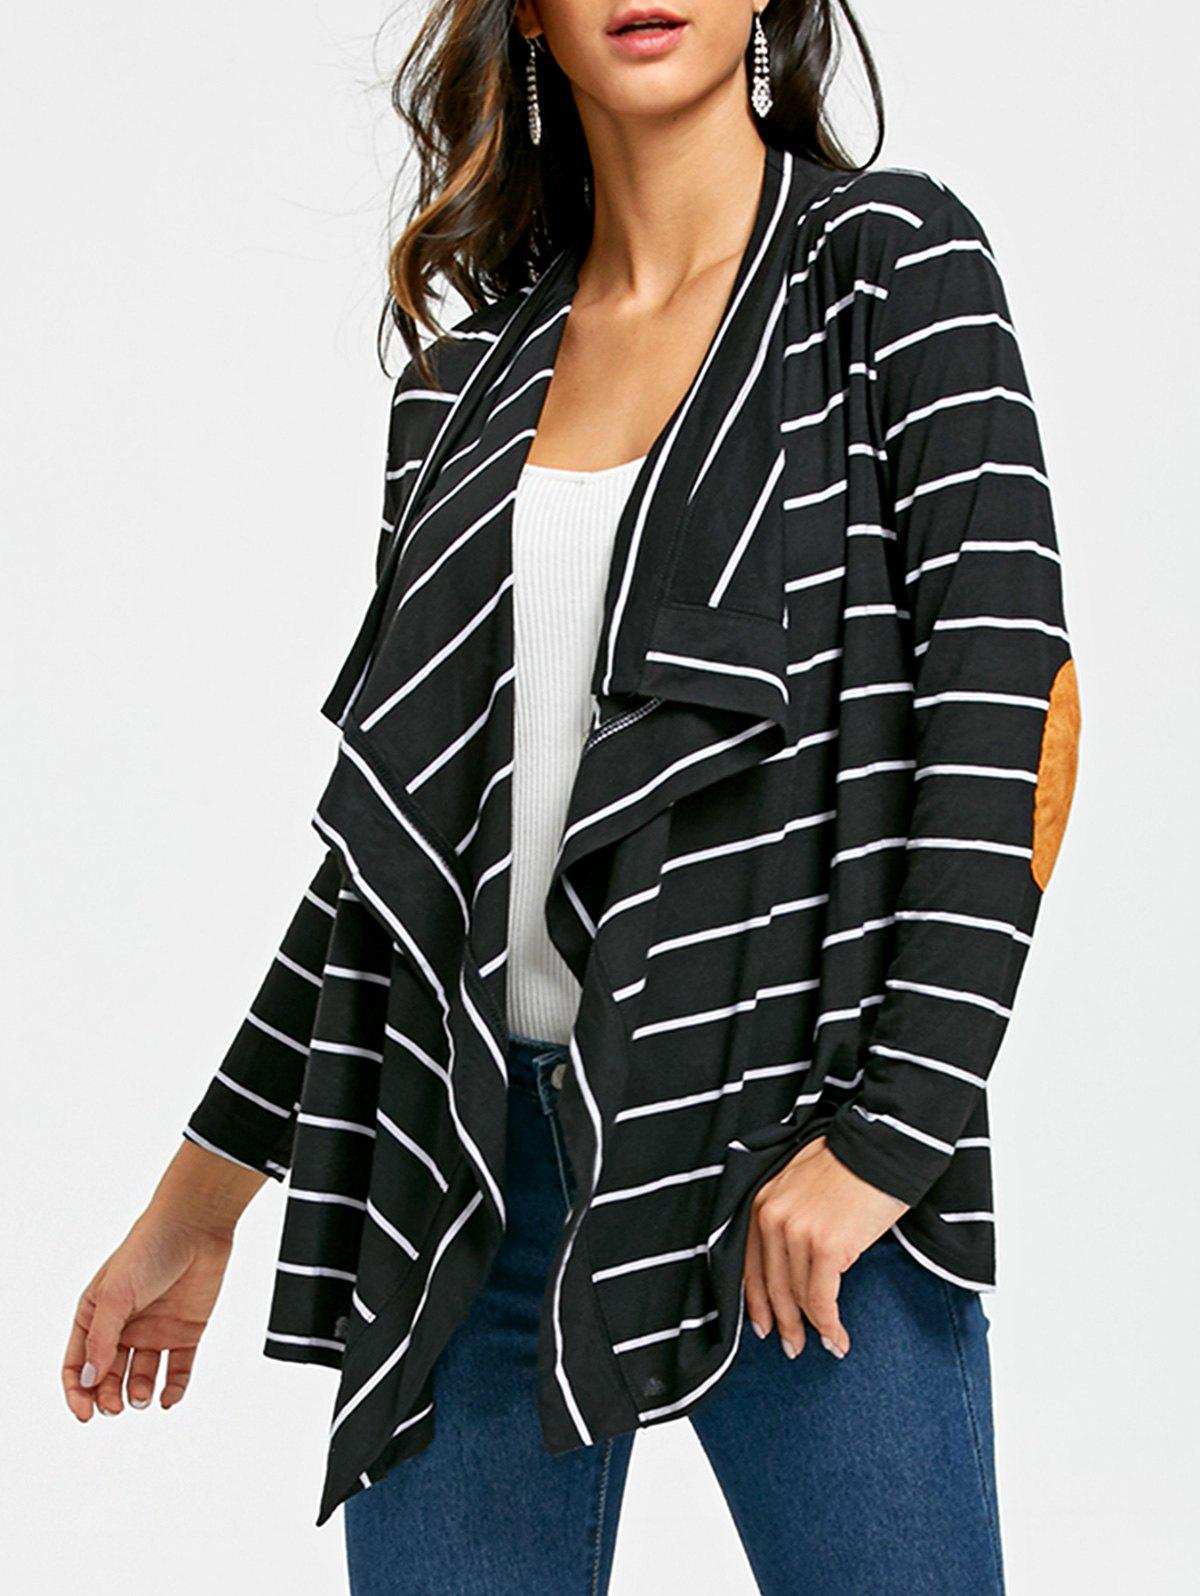 New Elbow Patch Striped Cardigan